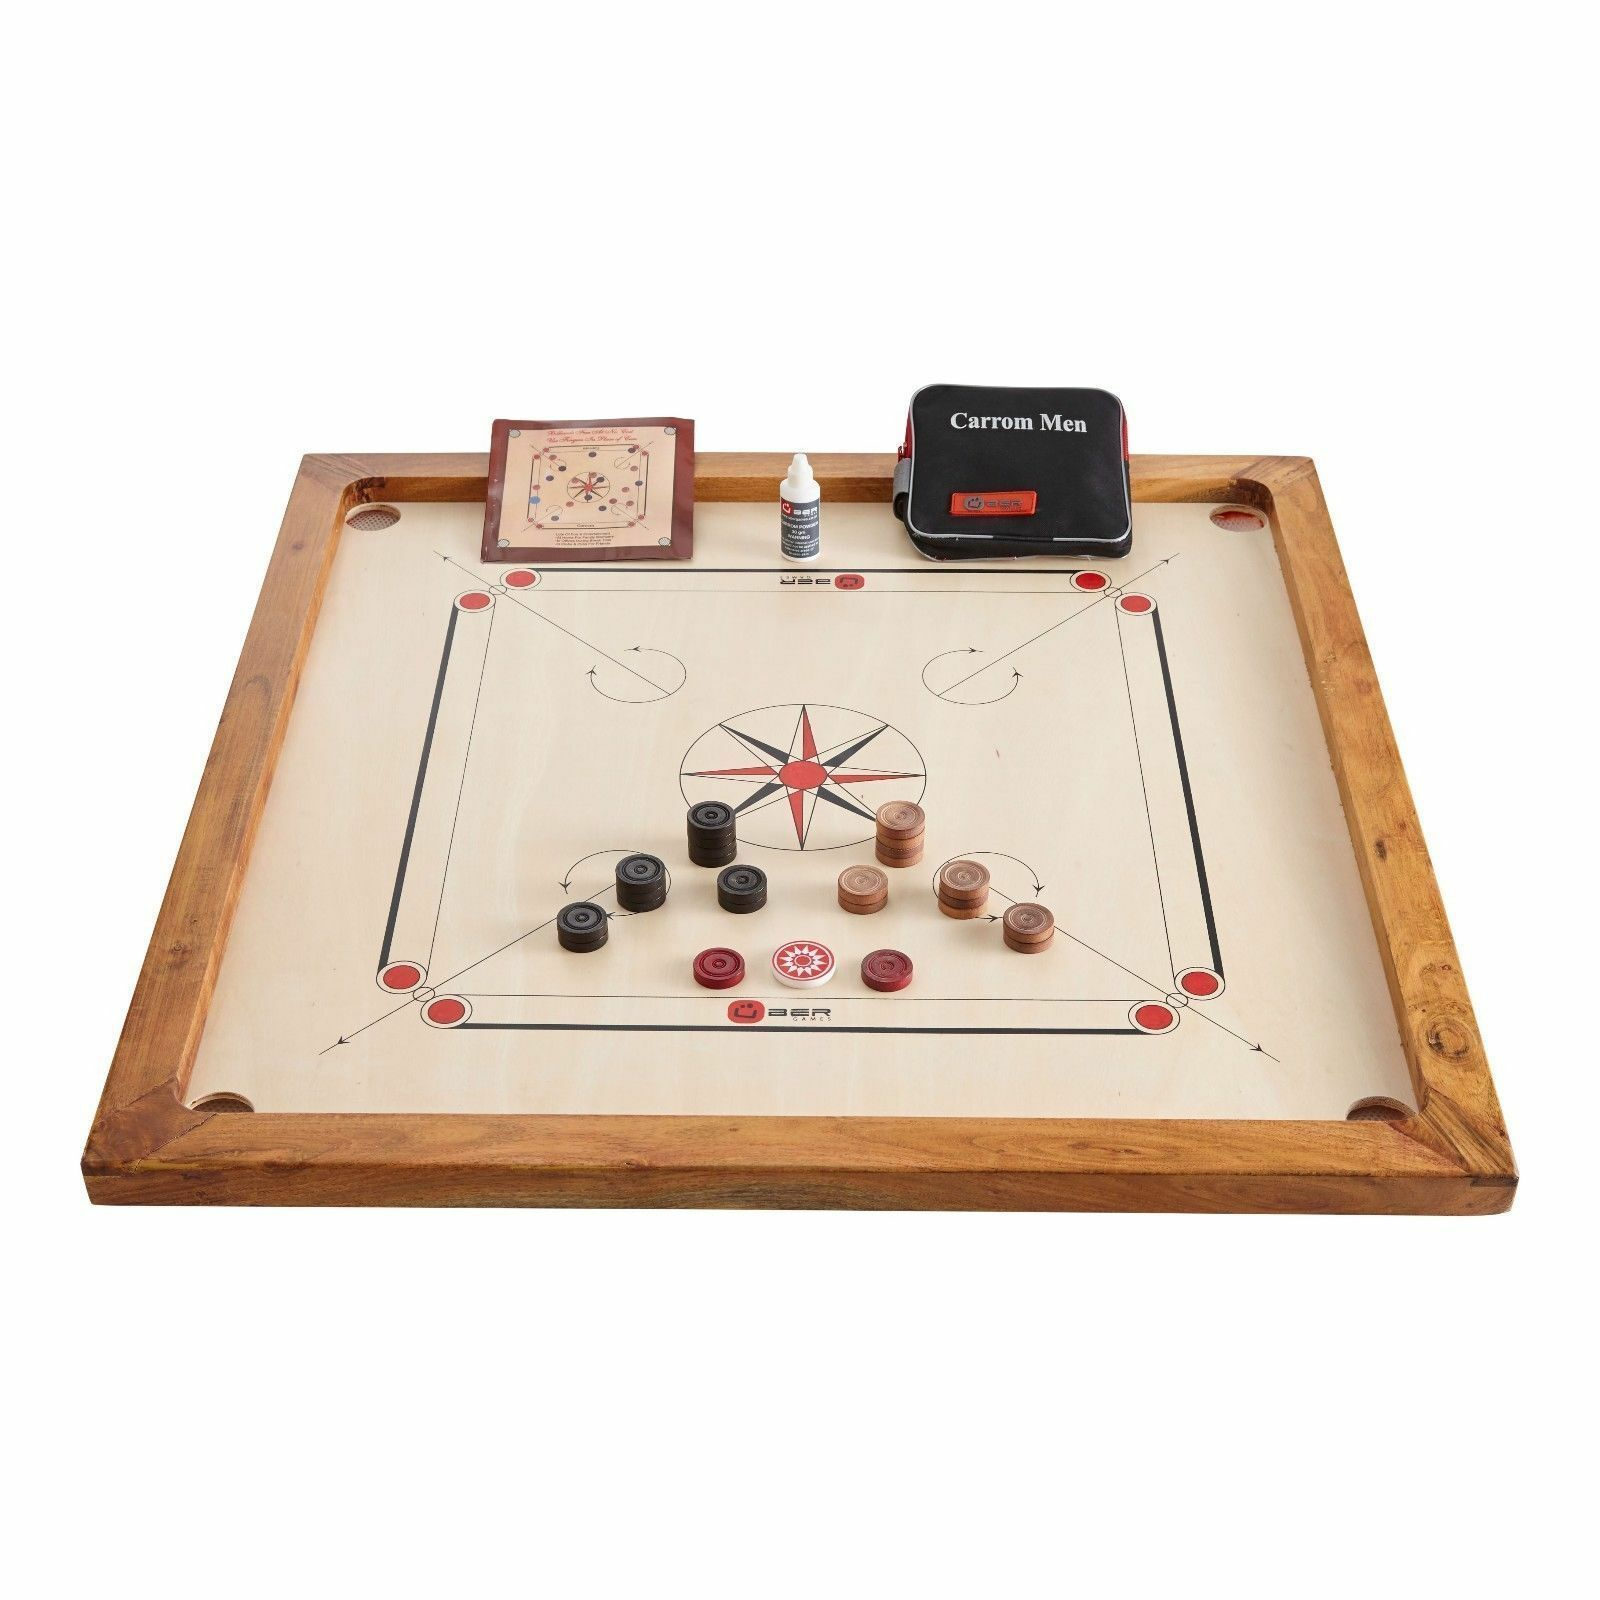 Carrom board-pièces, Striker, Poudre & 33 X 33  Rosewood Board in Carrom Set